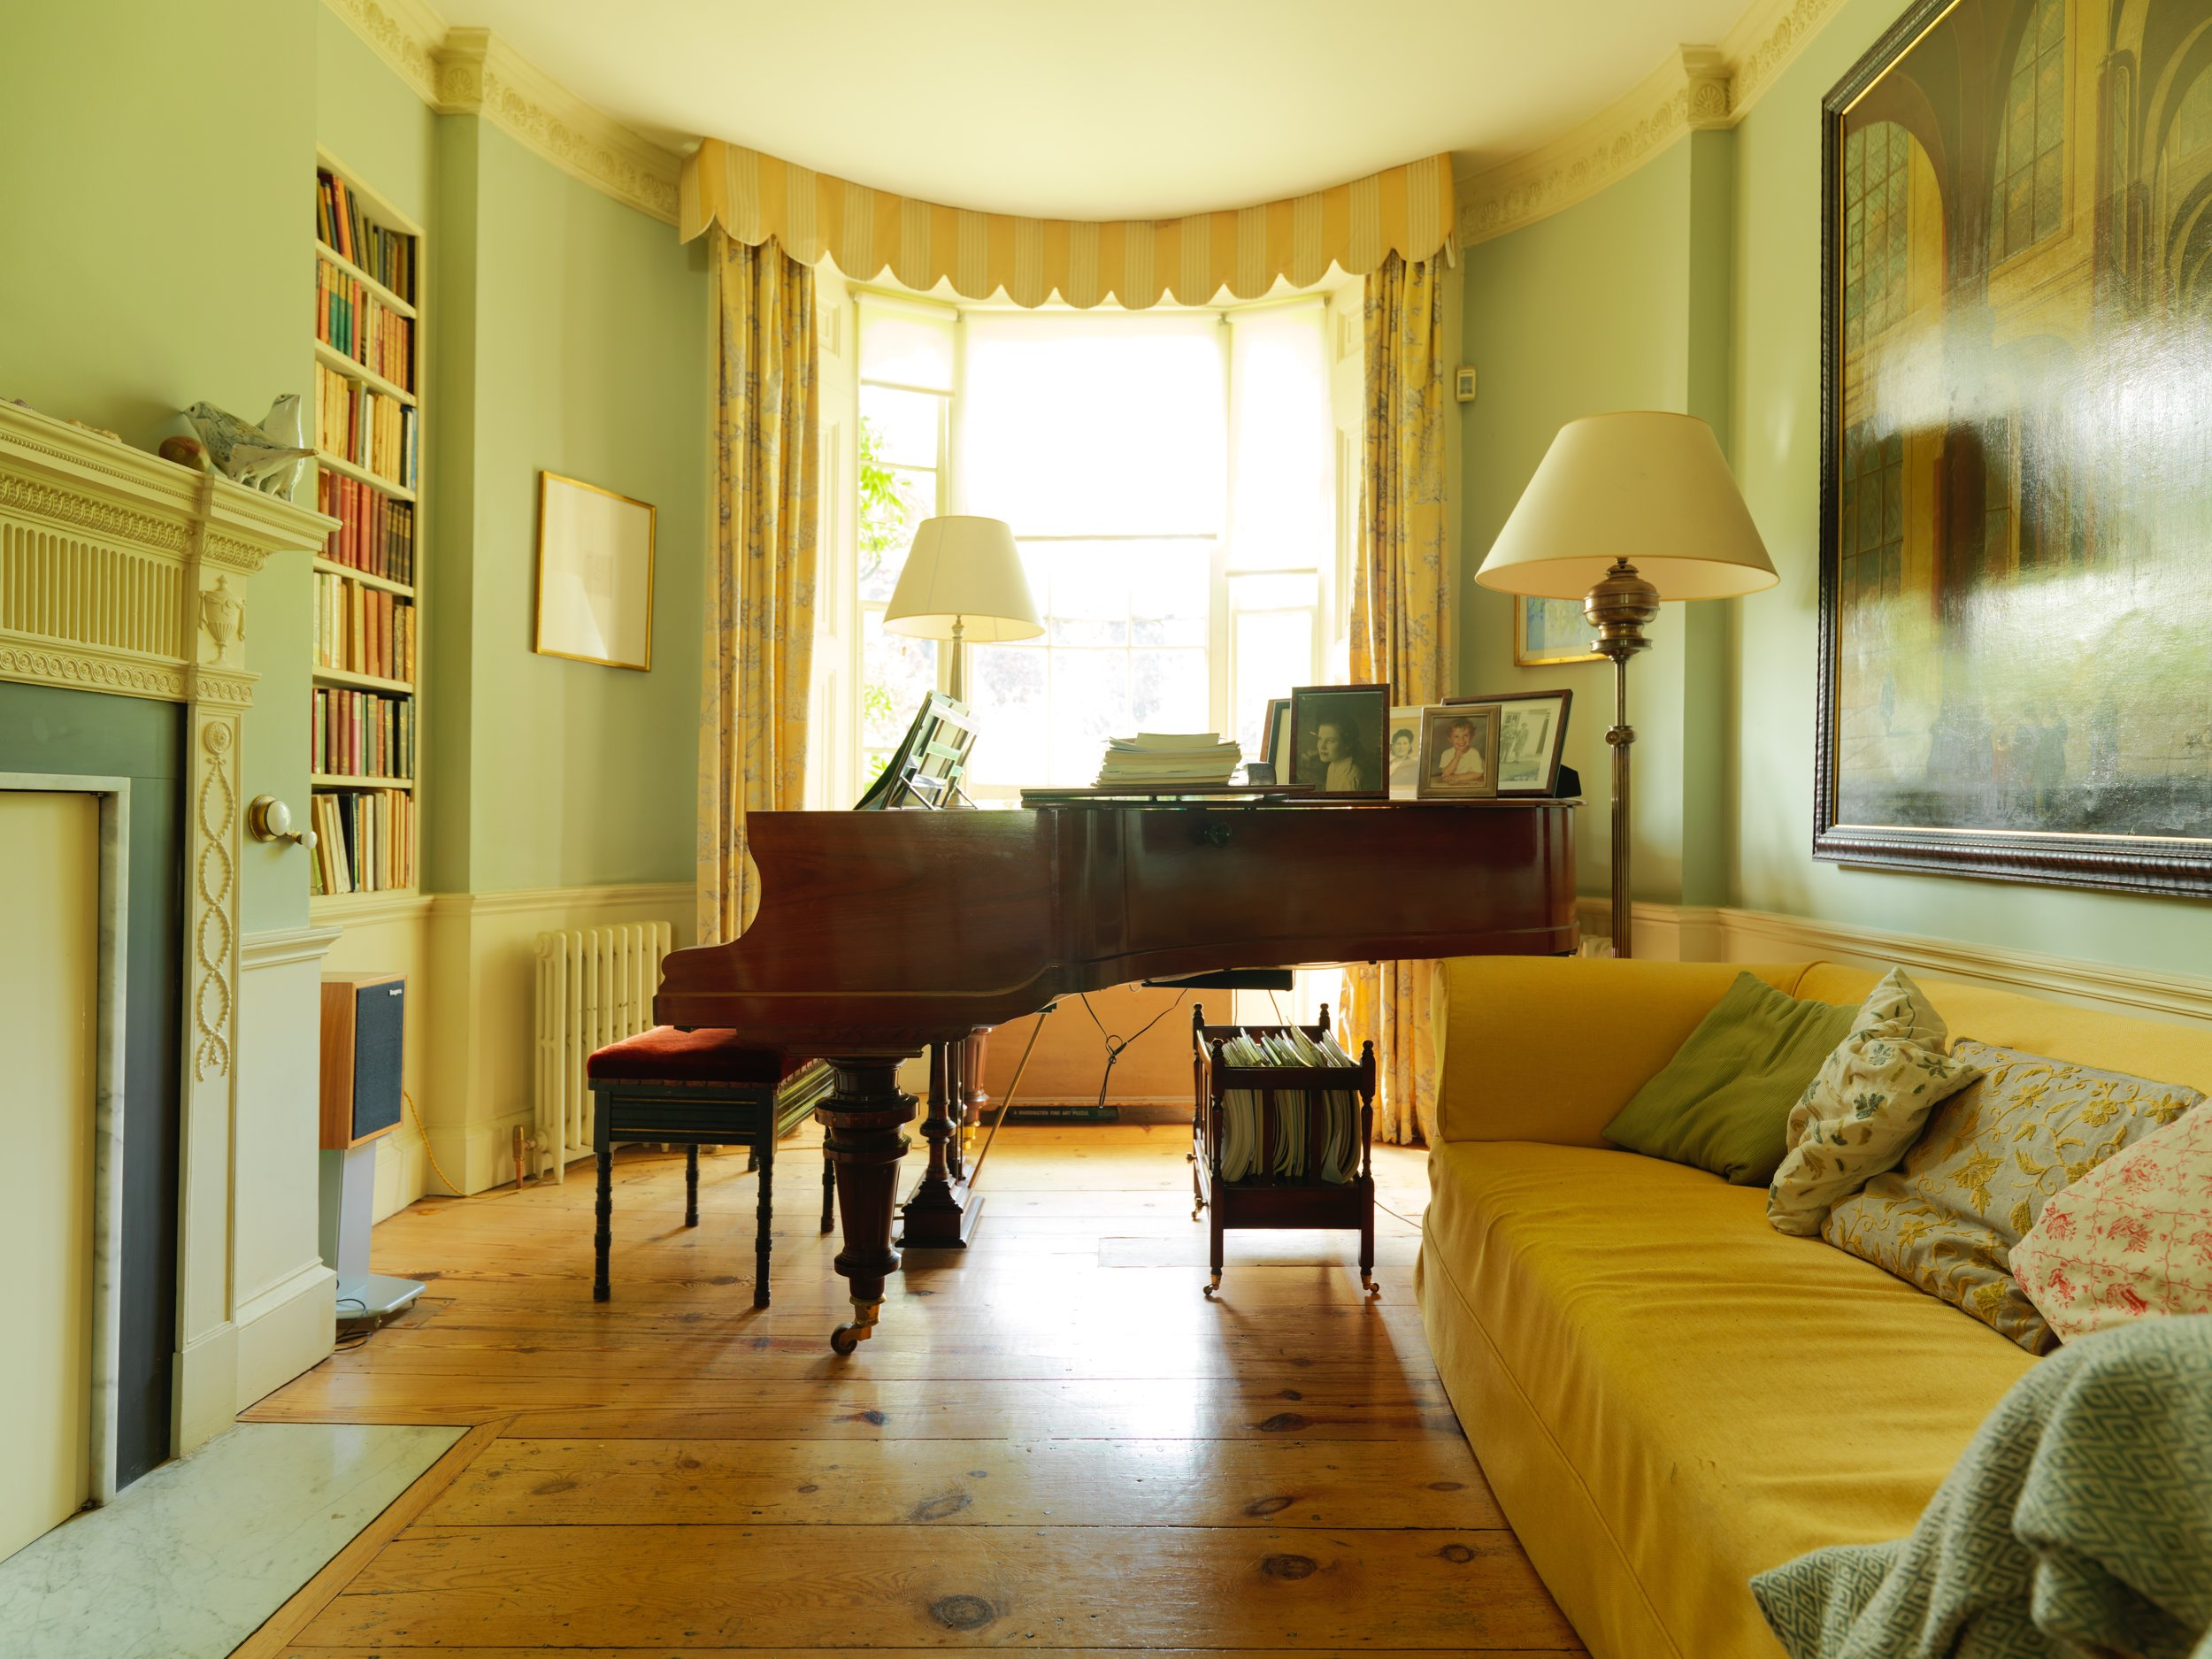 Sitting room with grand piano